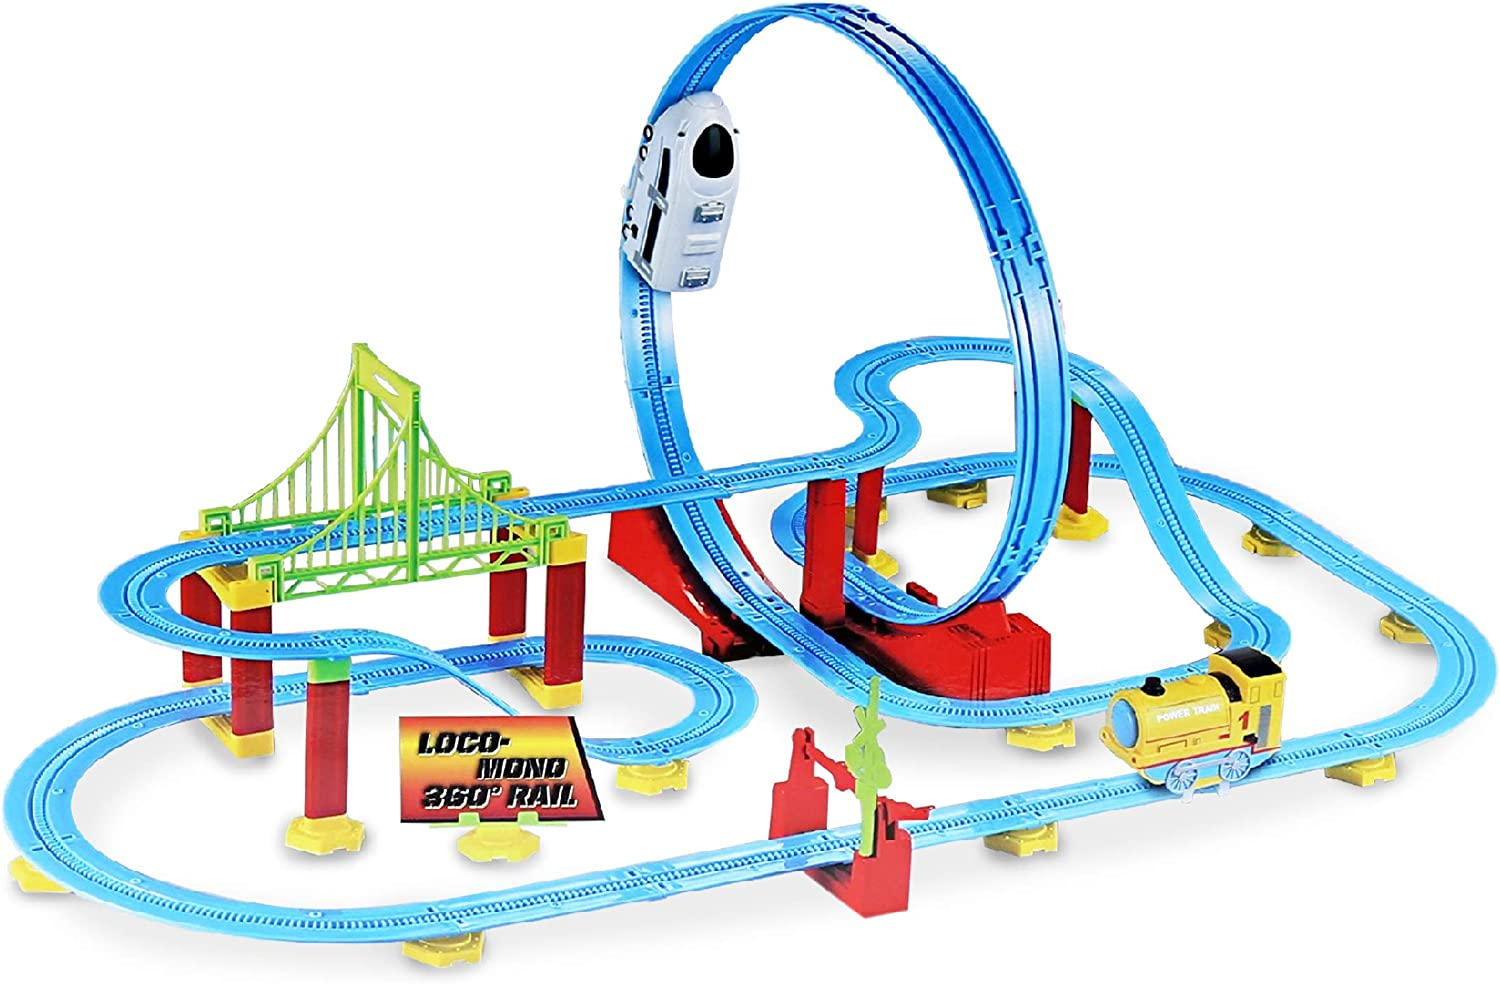 Mozlly White Locomotive 360° Bullet Rail Train Playset, High Speed Roller Coaster Battery Operated Mini Shuttle Machine Detachable Loop Race Track Building Structure Themed Toys & Games (82 Pcs Set)